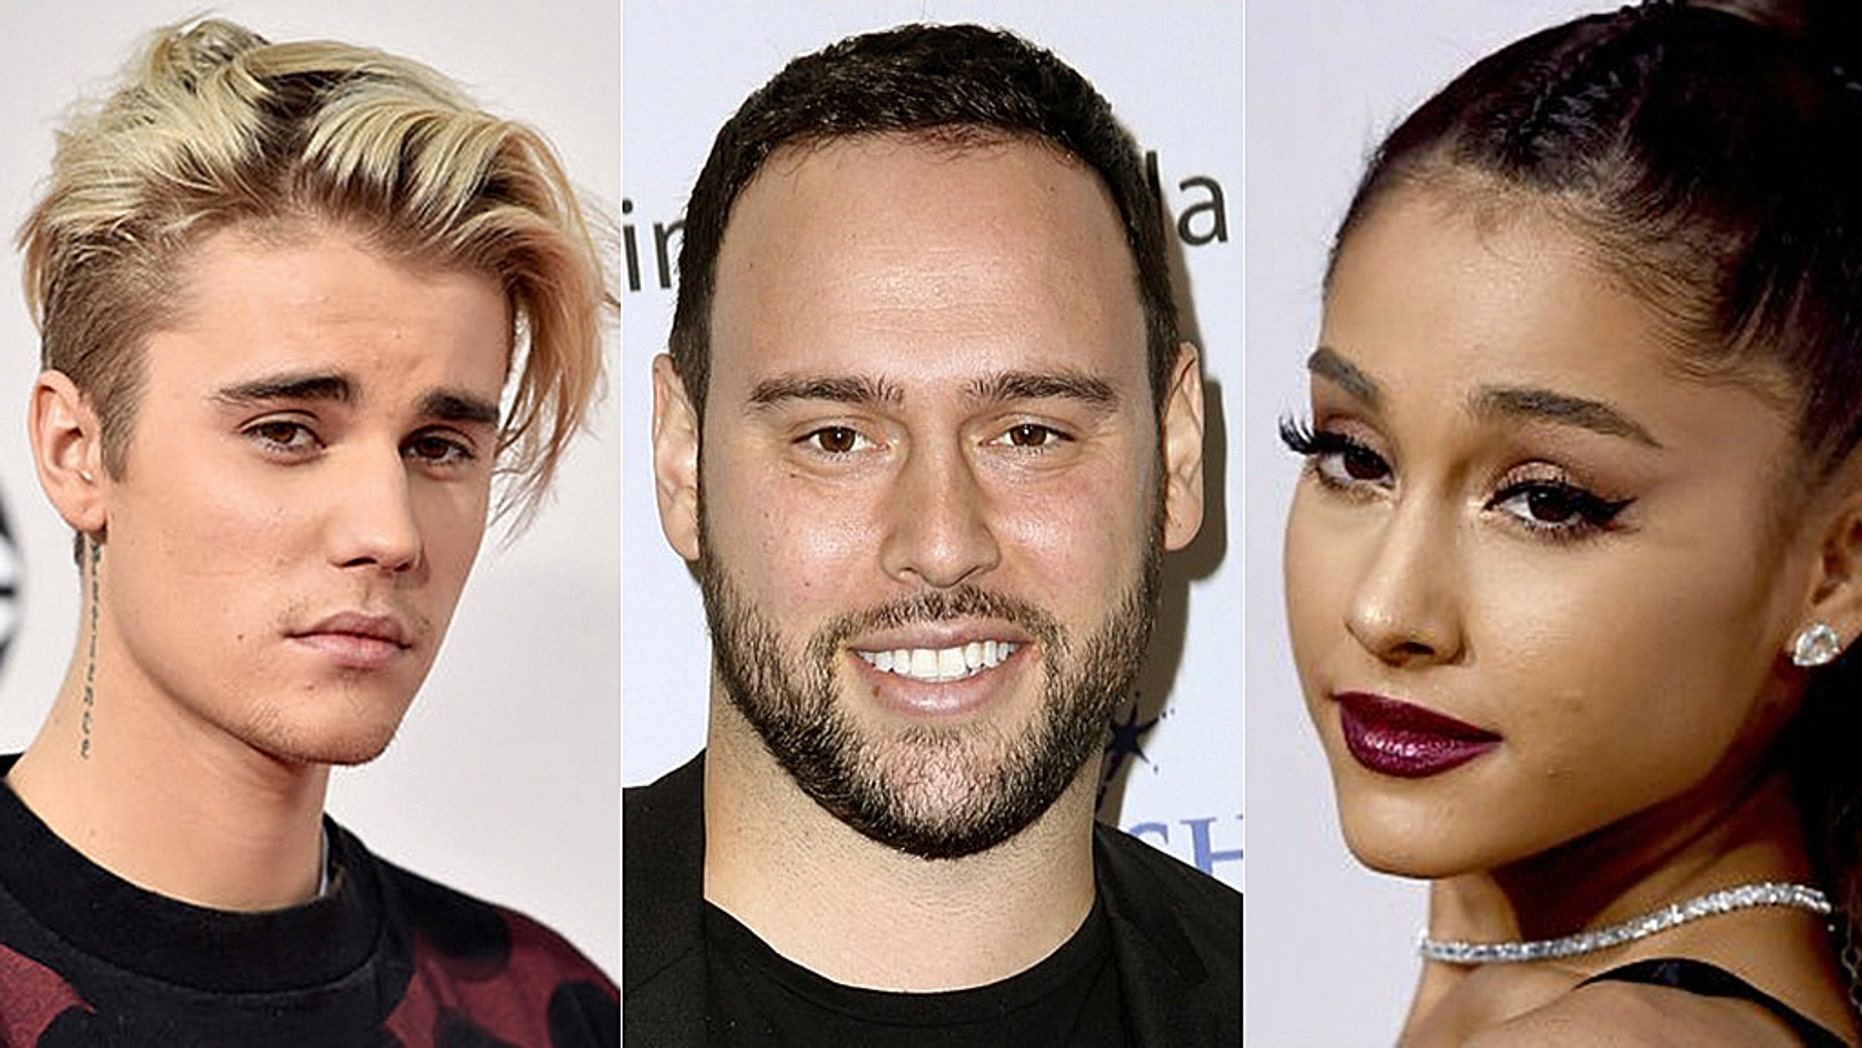 Ariana Grande came to Justin Bieber and Scooter Braun's defense after a fan tweeted about the singers' engagements and their manager.